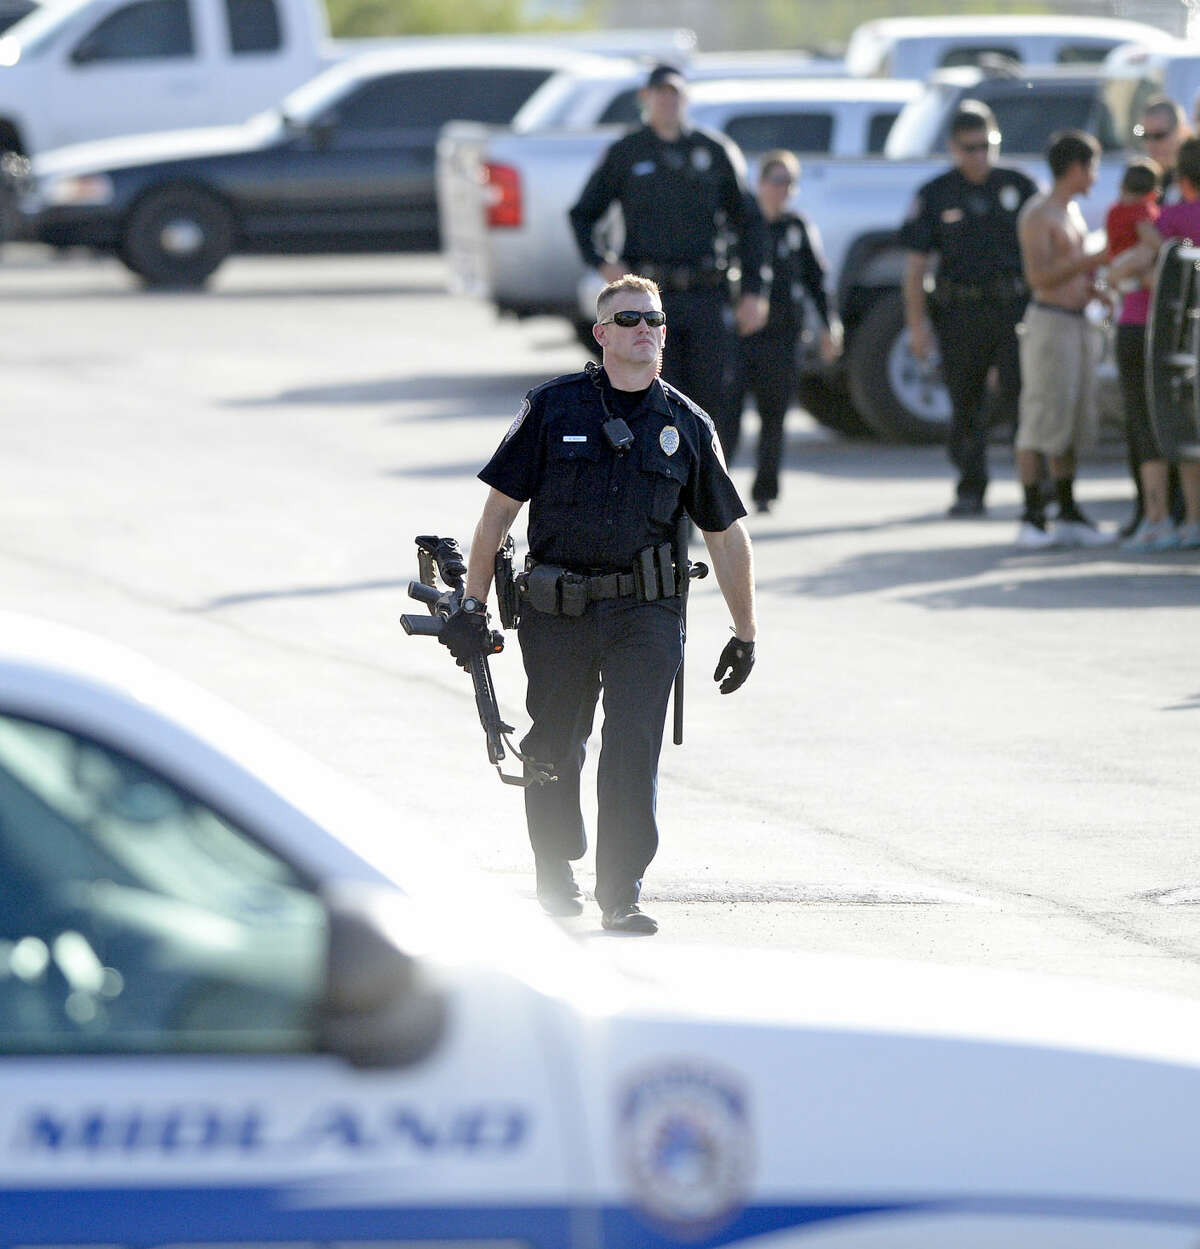 Midland police officers respond to a domestic disturbance at the Waterford Lakes apartments Tuesday, July 14, 2015. One subject was brought into custody with assistance from a police canine. Two of the subjects involved are being investigated for other crimes throughout the Permian Basin. James Durbin/Reporter-Telegram